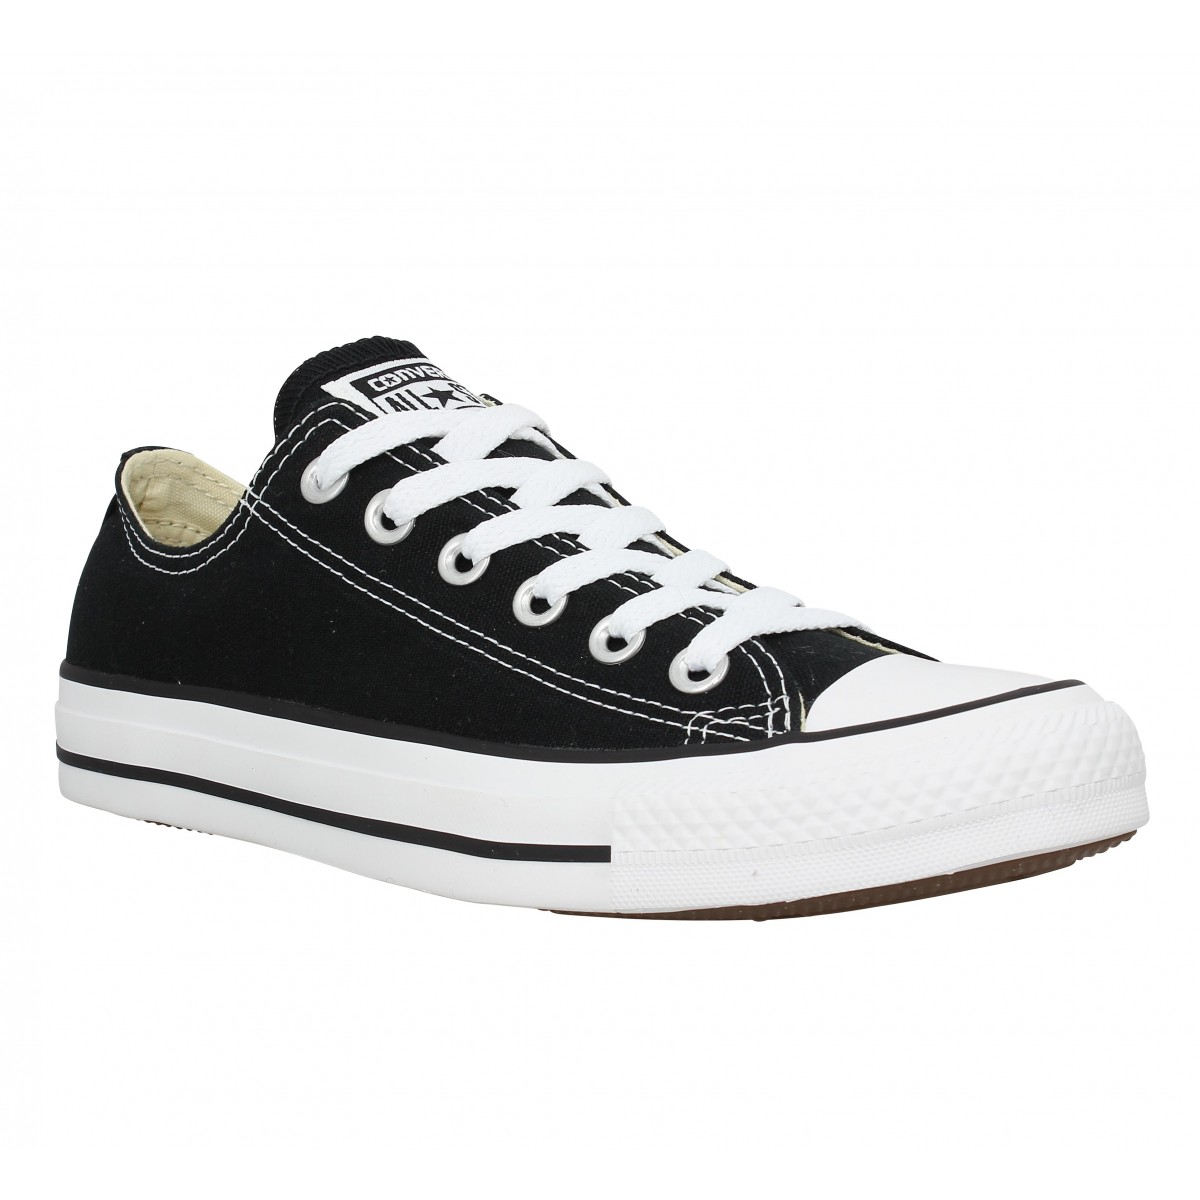 28538b8fea51f Baskets CONVERSE Chuck Taylor All Star toile Homme Noir